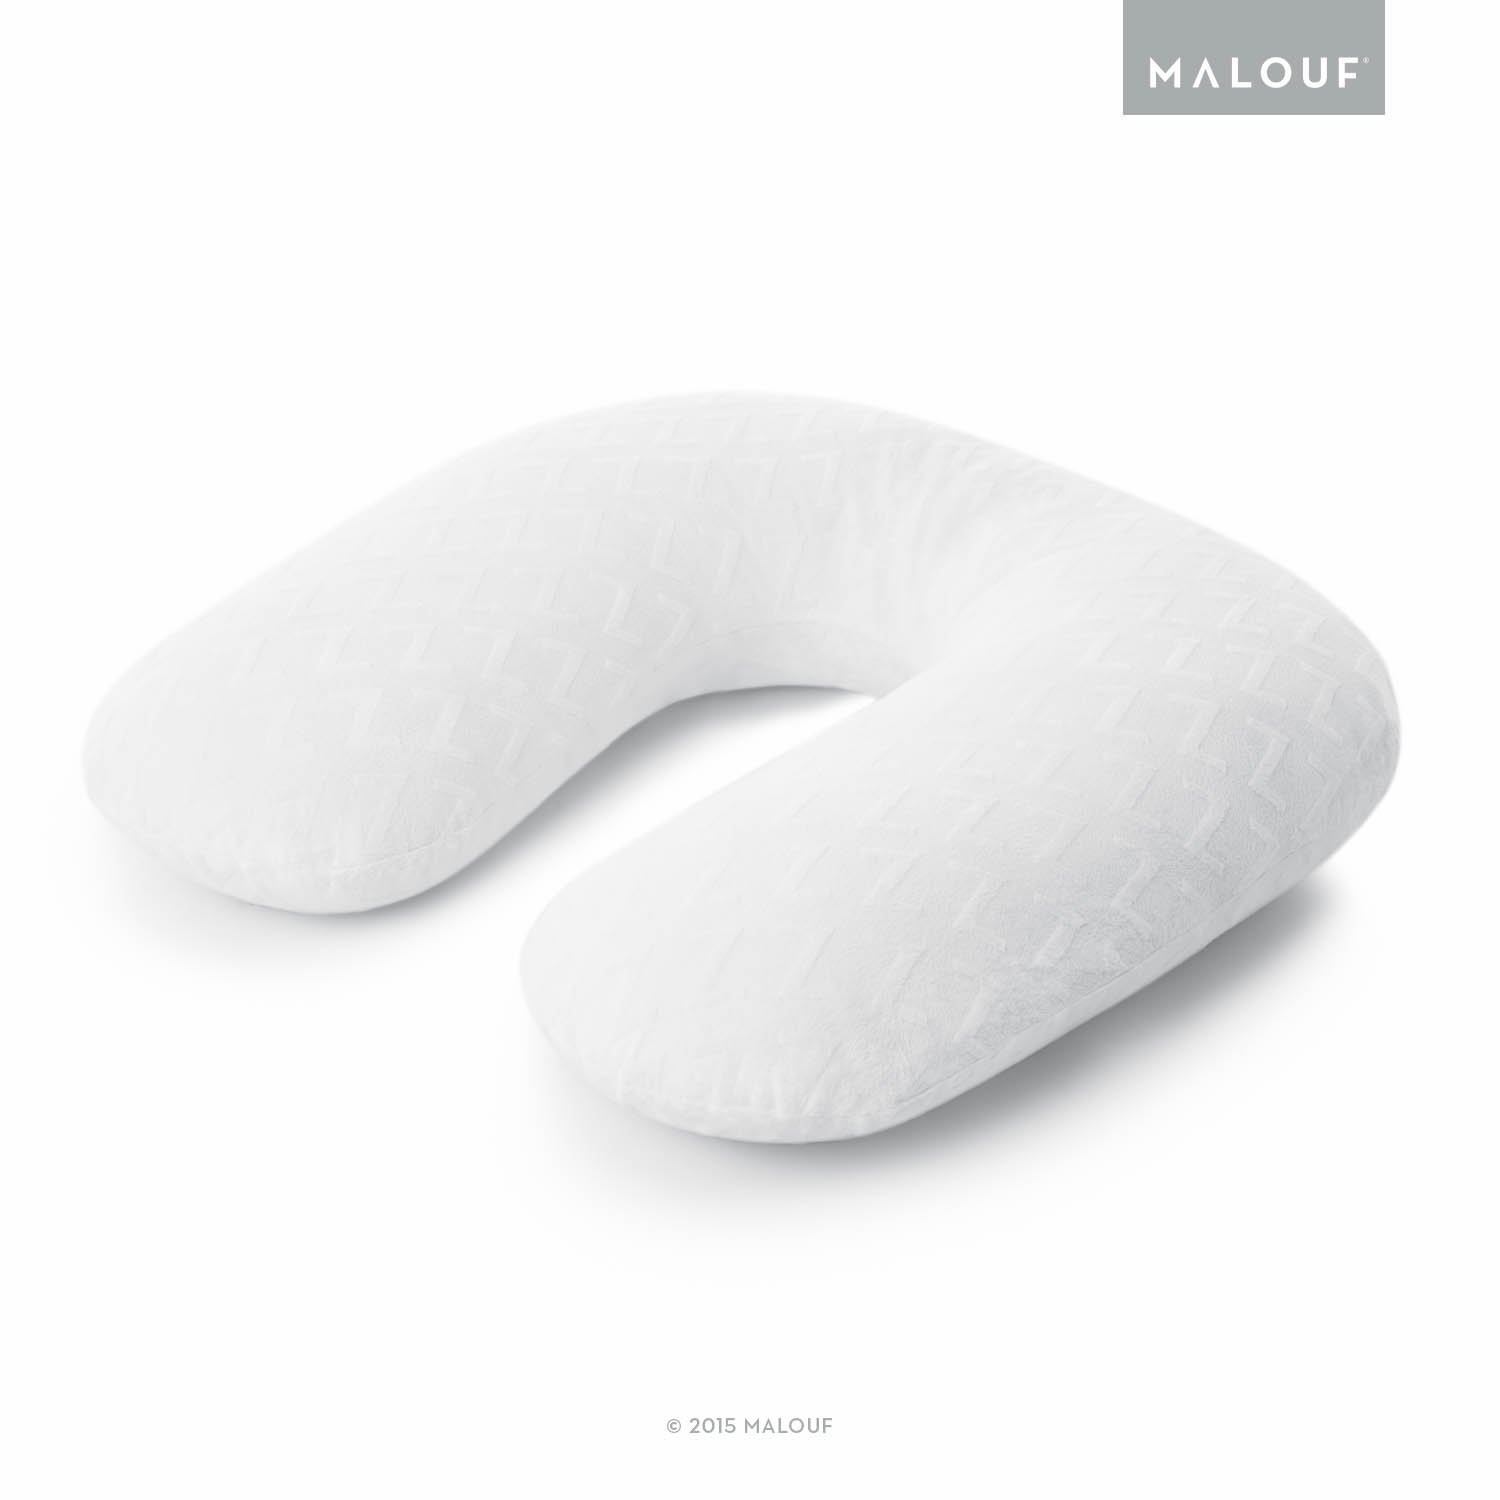 Z Pillow Soft Bamboo Replacement Cover - Fits Z U-Shape Body Pillow MALOUF ZZPUHFGMRC